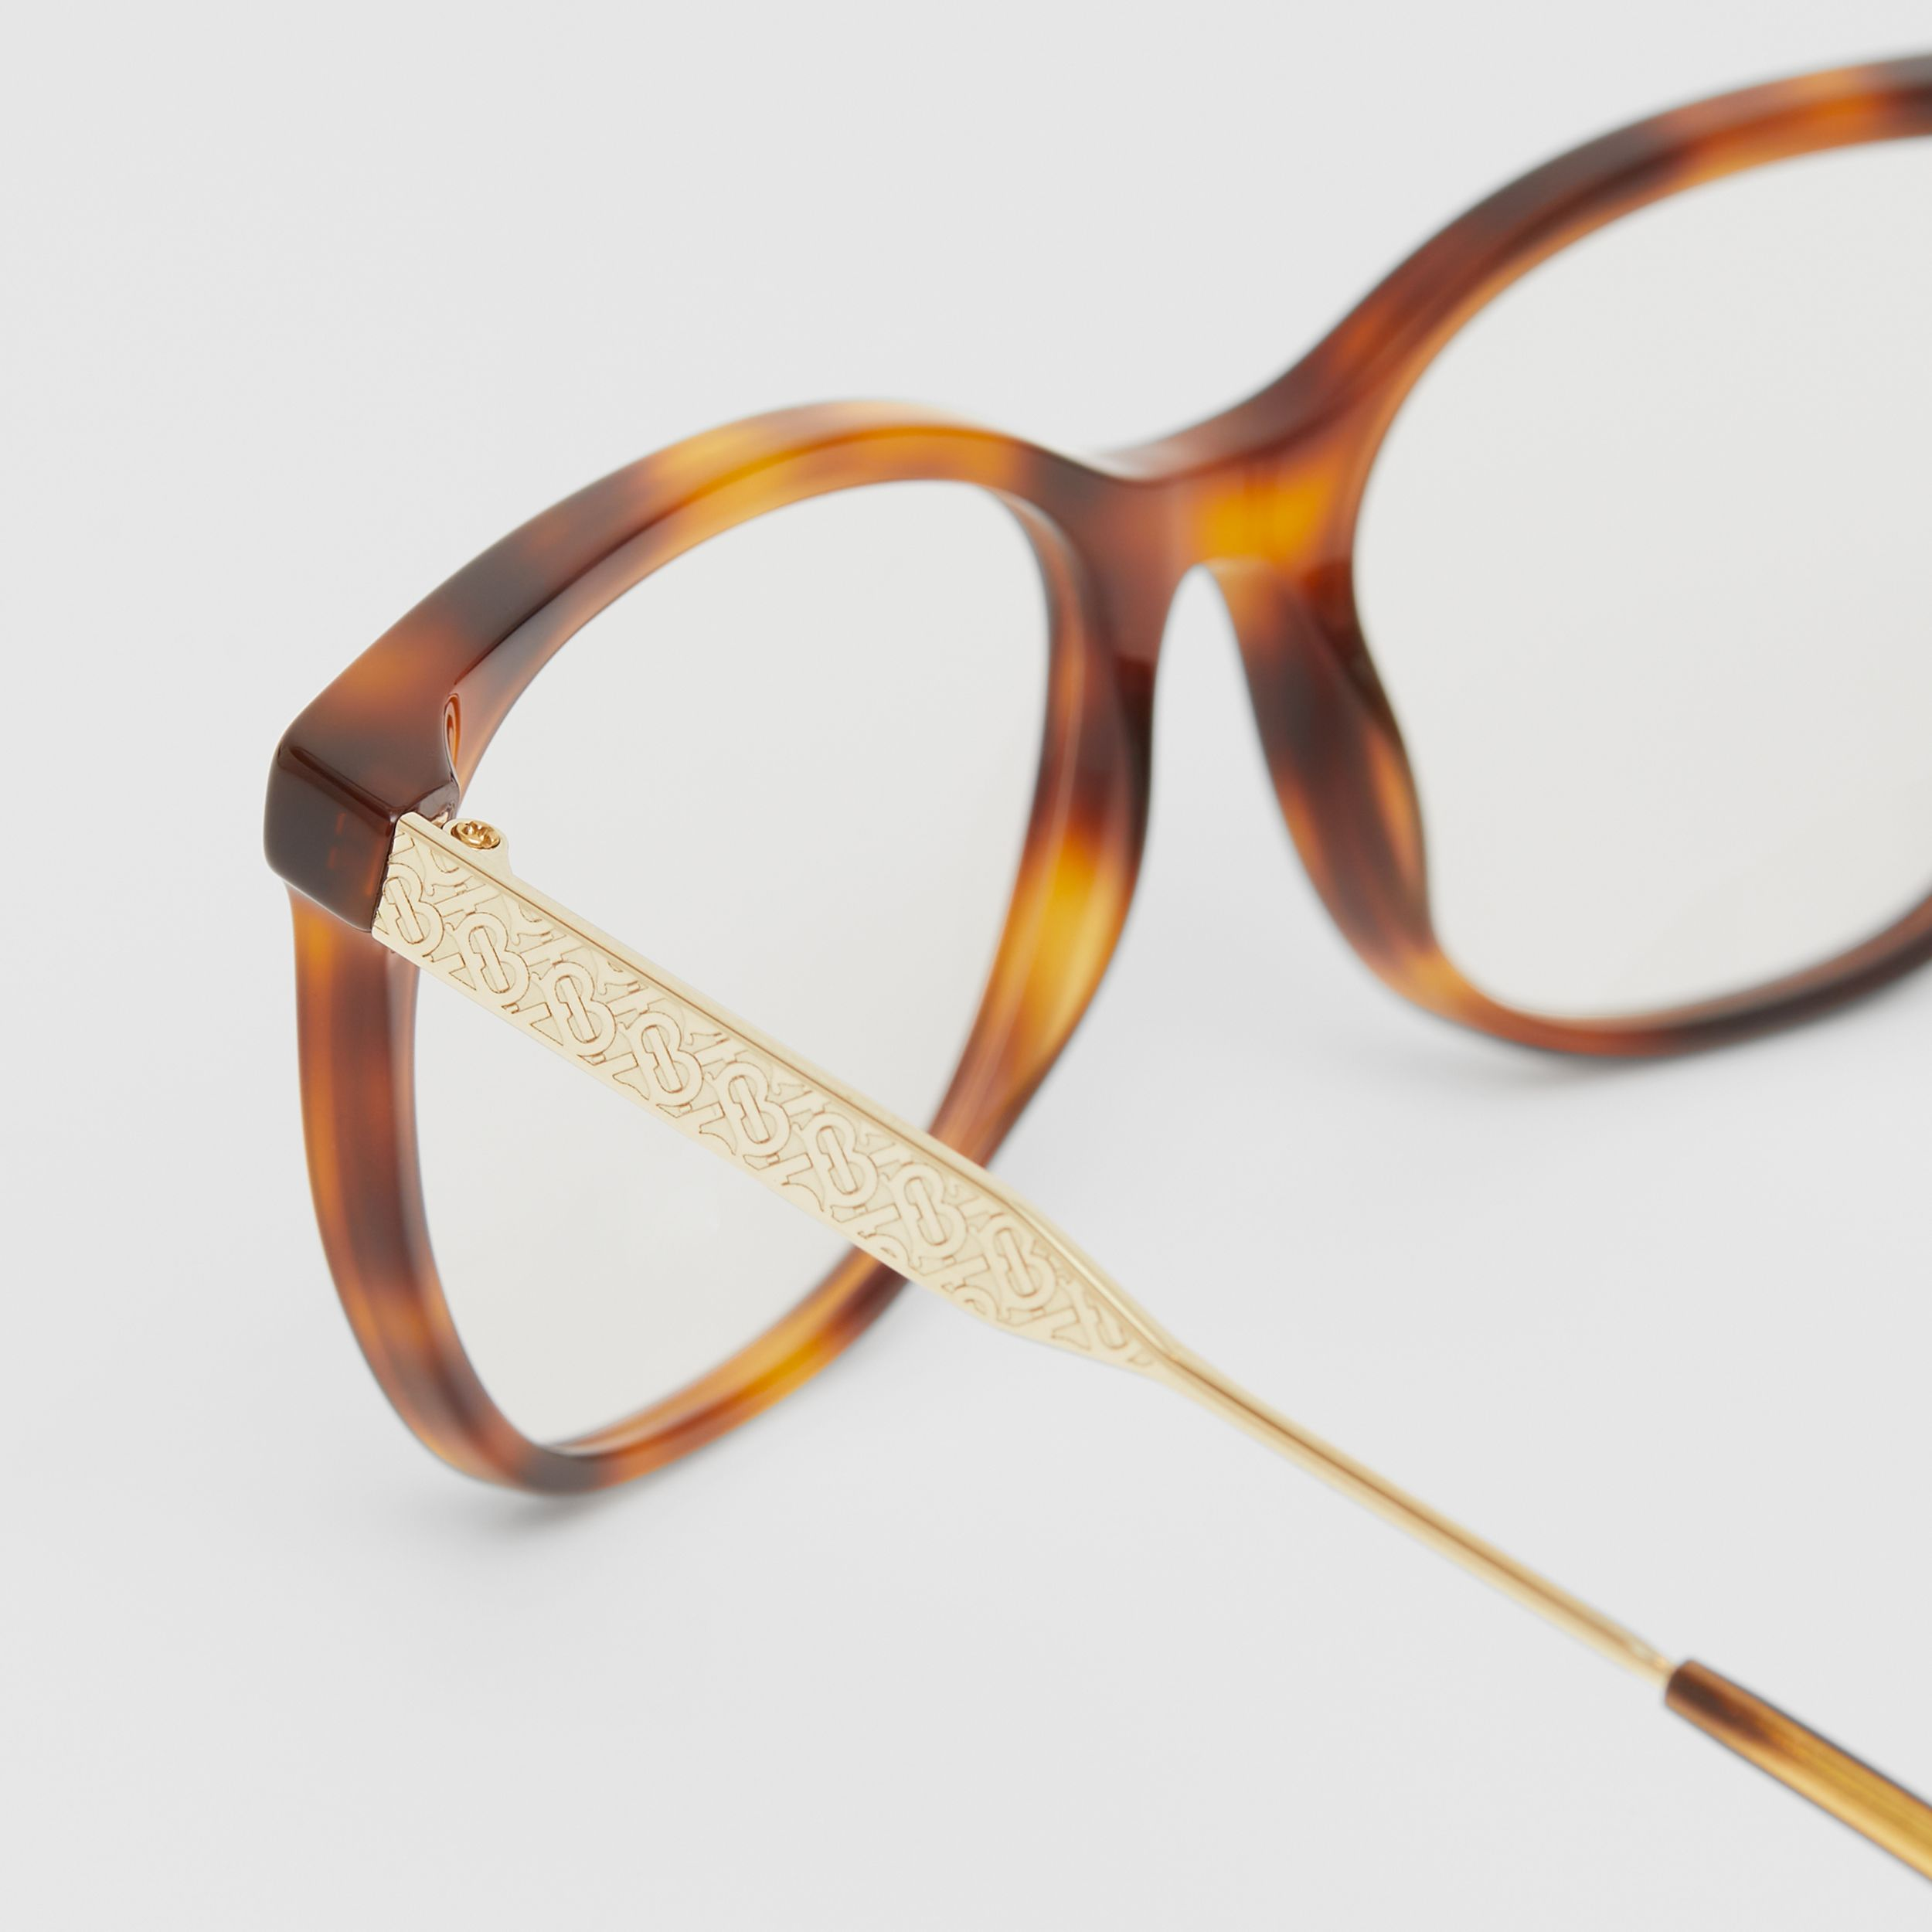 Cat-eye Optical Frames in Dark Amber Tortoiseshell - Women | Burberry Australia - 2